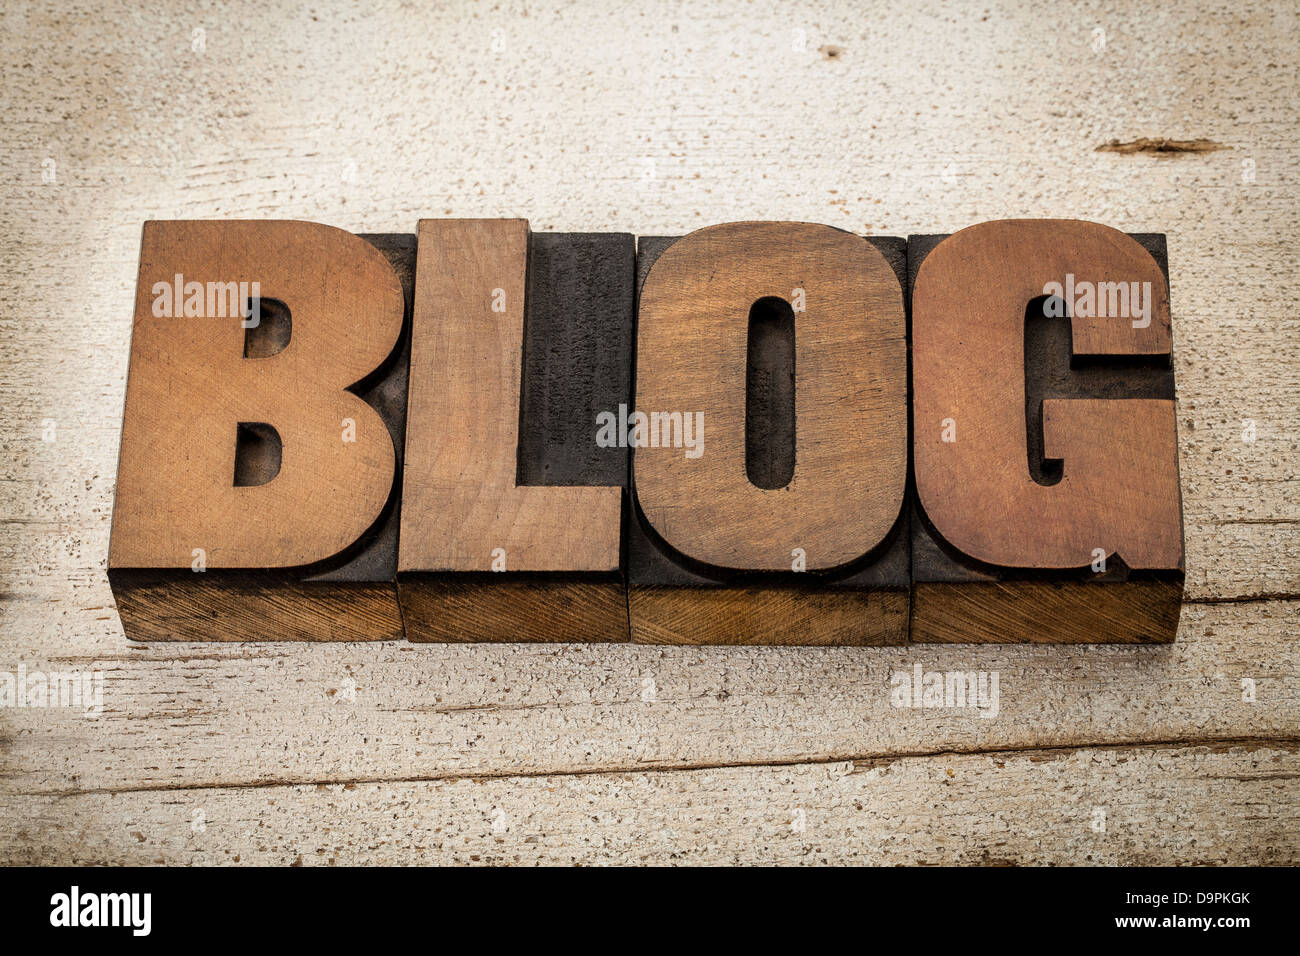 blog - a word in vintage letterpress wood type on a grunge painted barn wood background - Stock Image